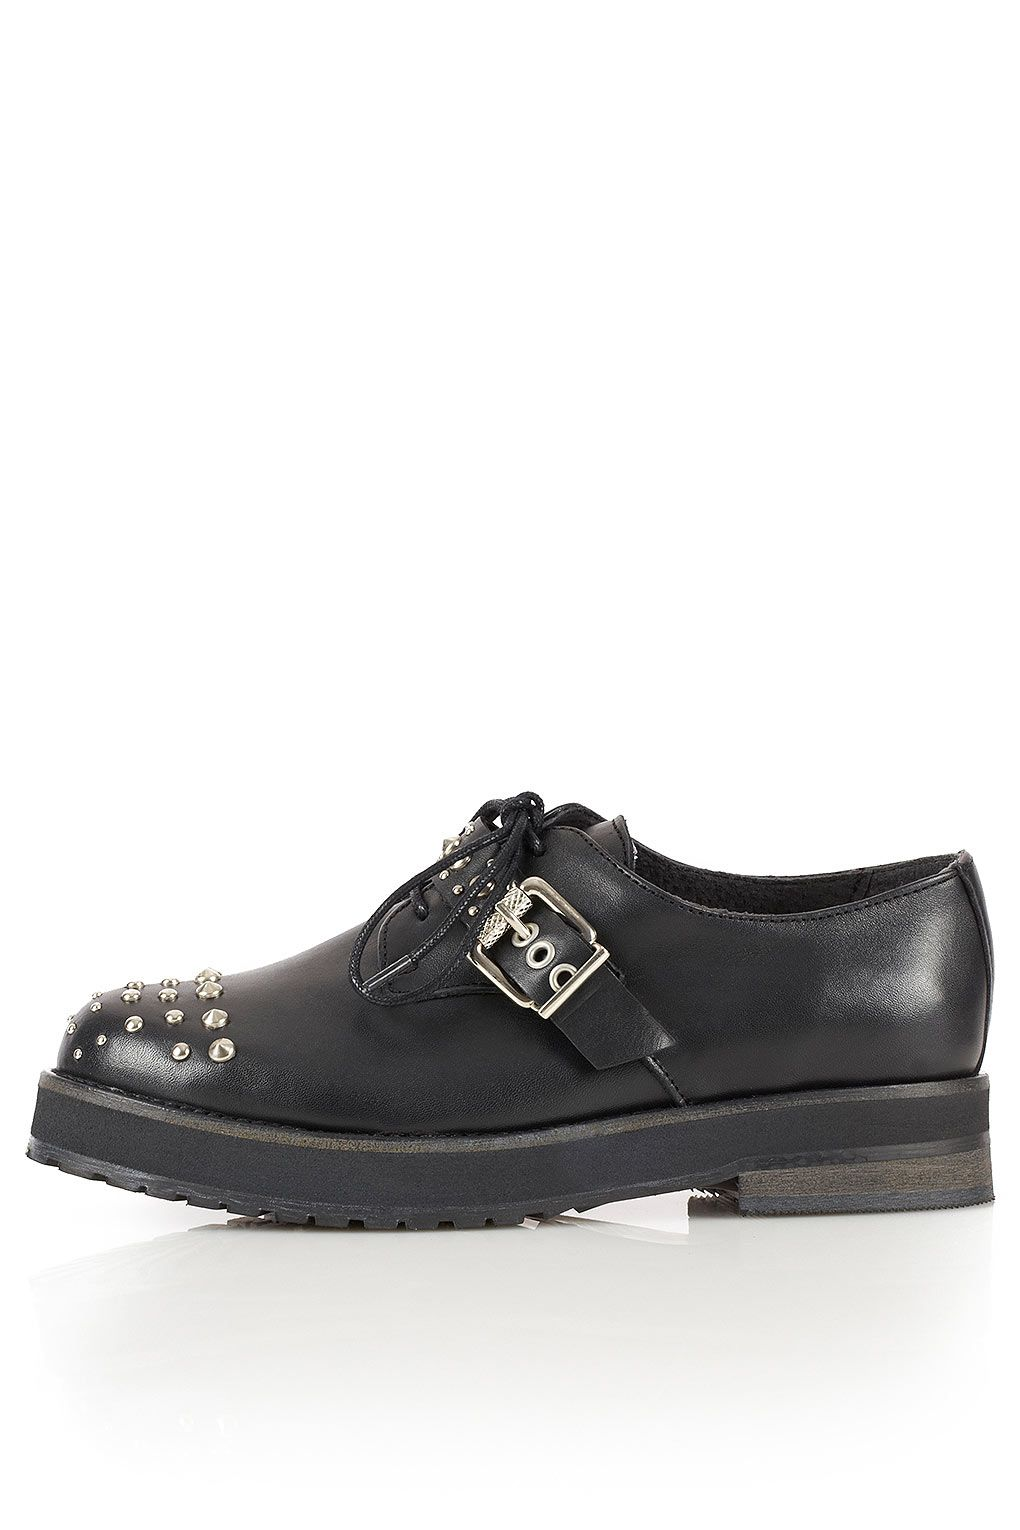 Kaos Studded Heavy Creepers Topshop Price 7500 A W 2012 Grunge